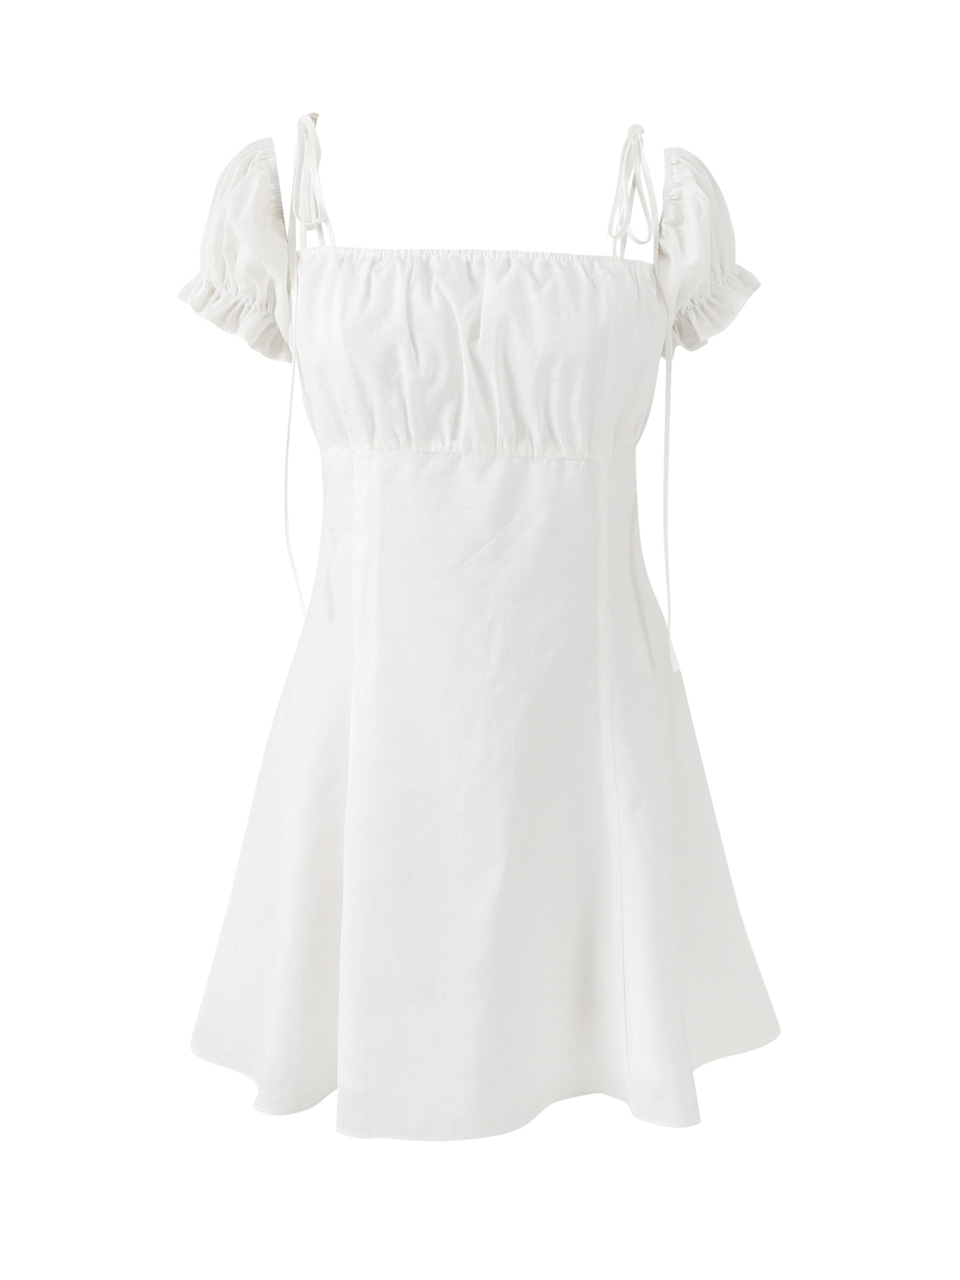 Puff mini dress (white)